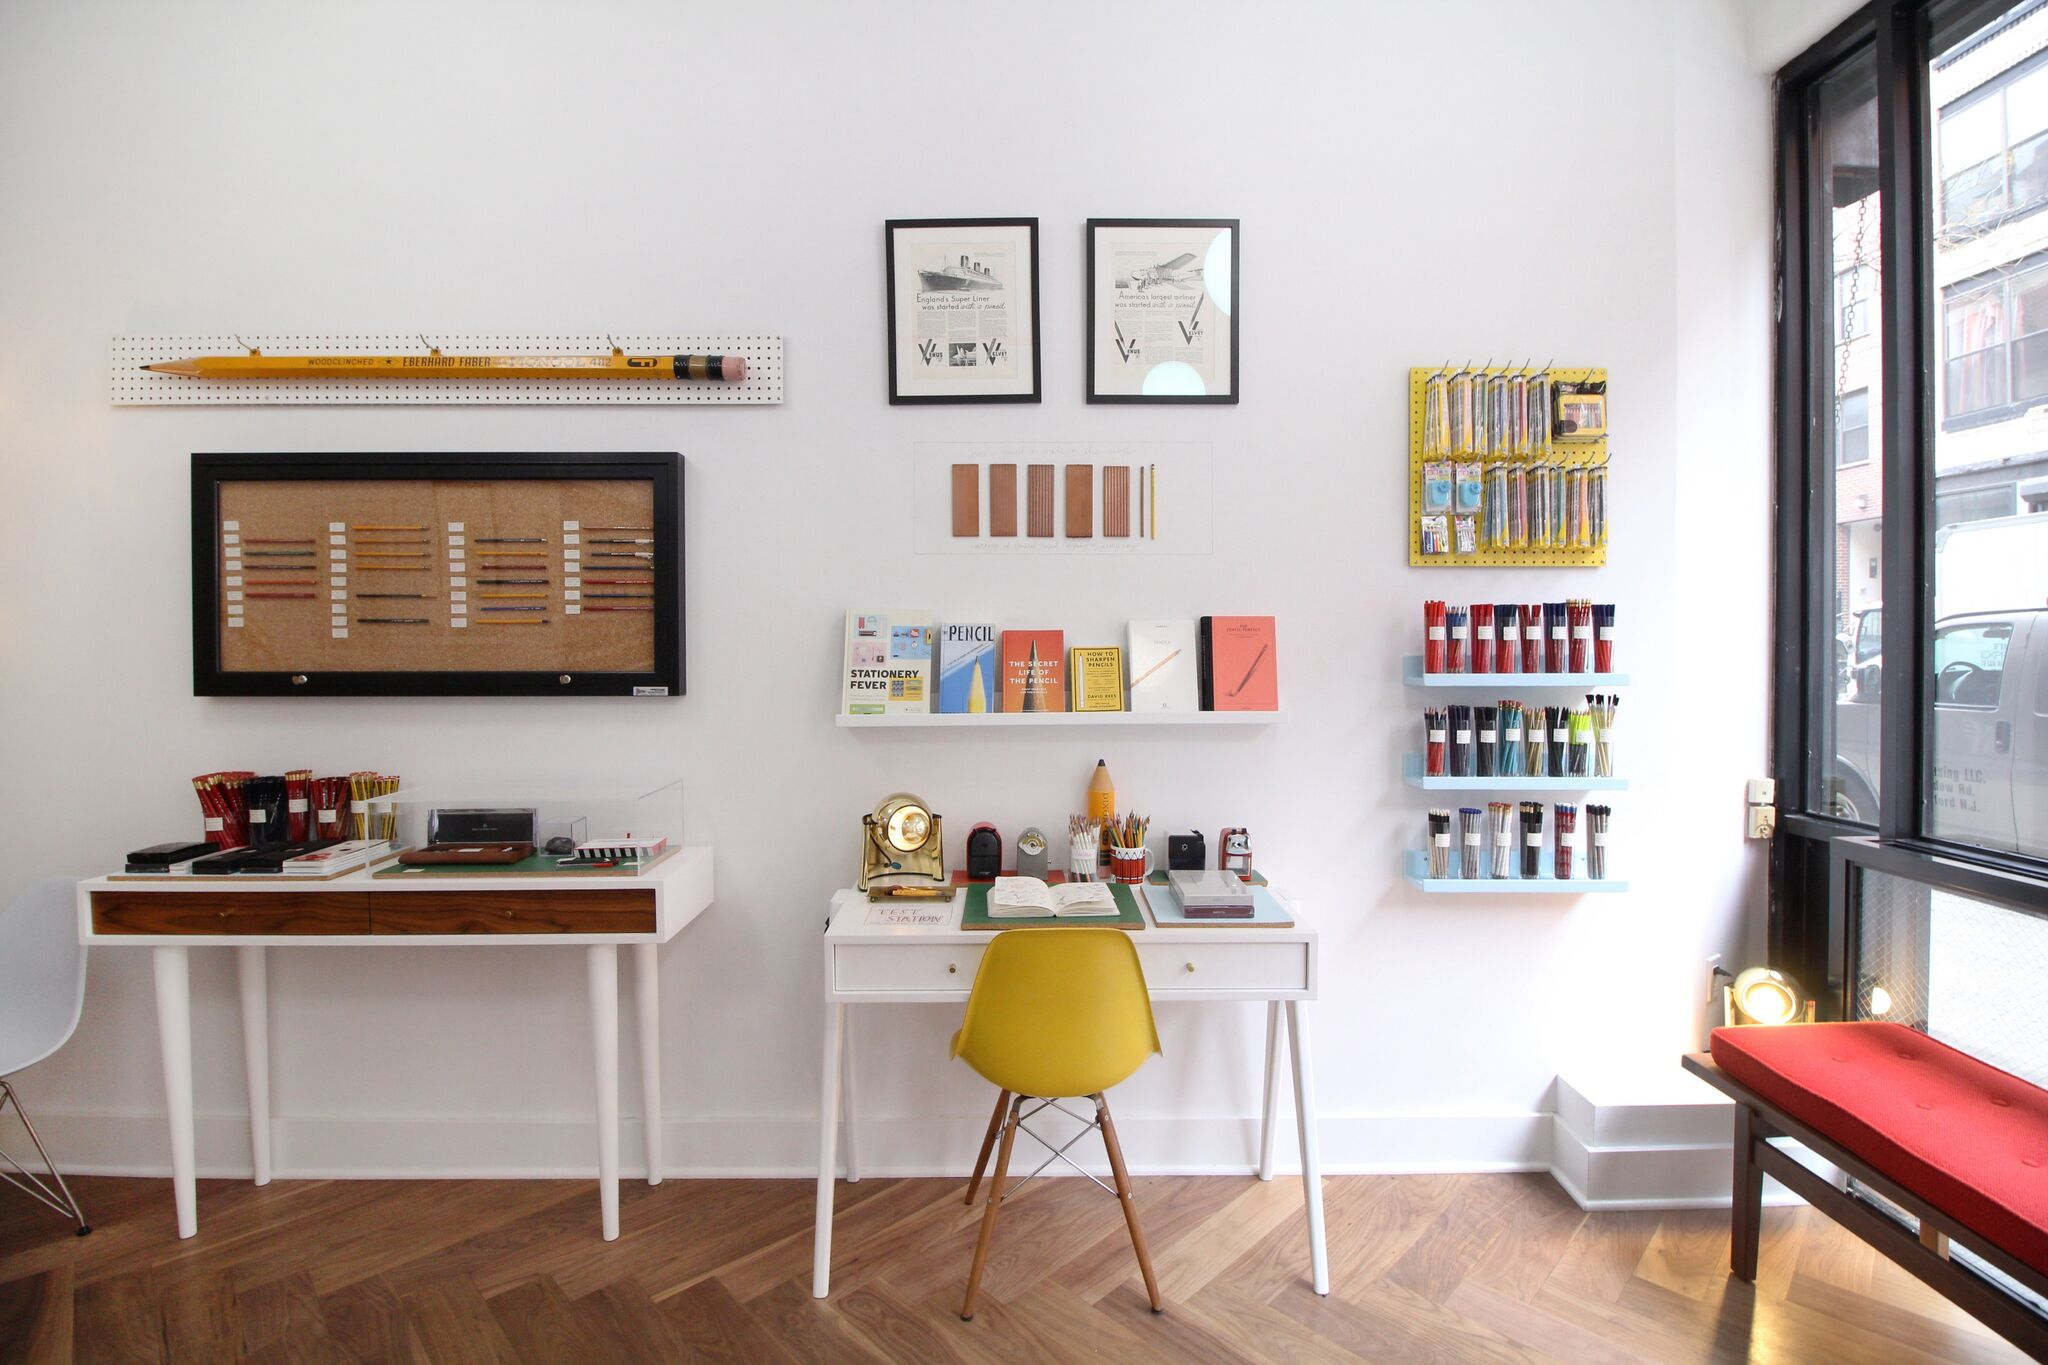 Ein reduziertes Interieur in Caroline Weavers Shop in New York gibt dem Bleistift den Raum, den er verdient © Caroline Weaver, CW Pencil Enterprise